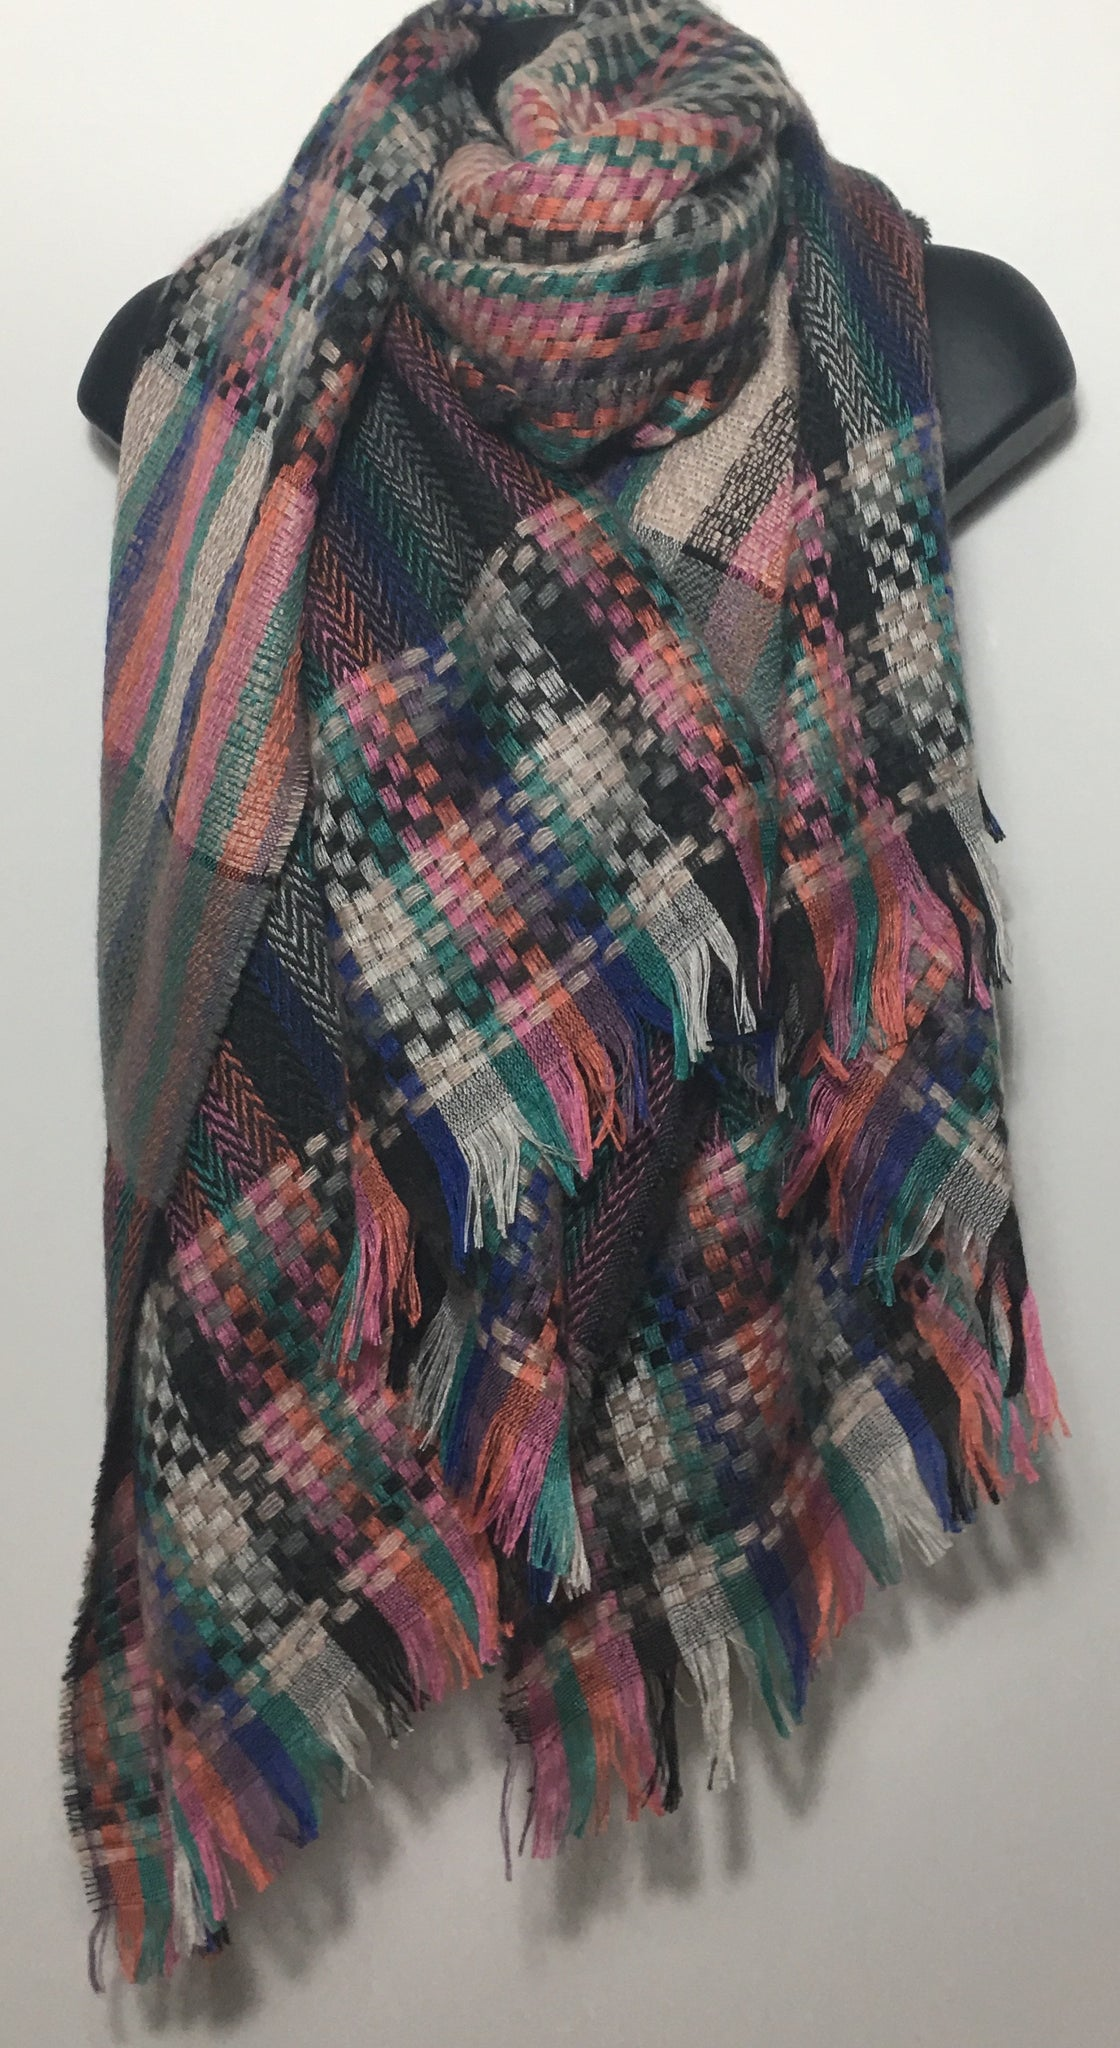 Abstract woven scarf in shades of pink green and blue